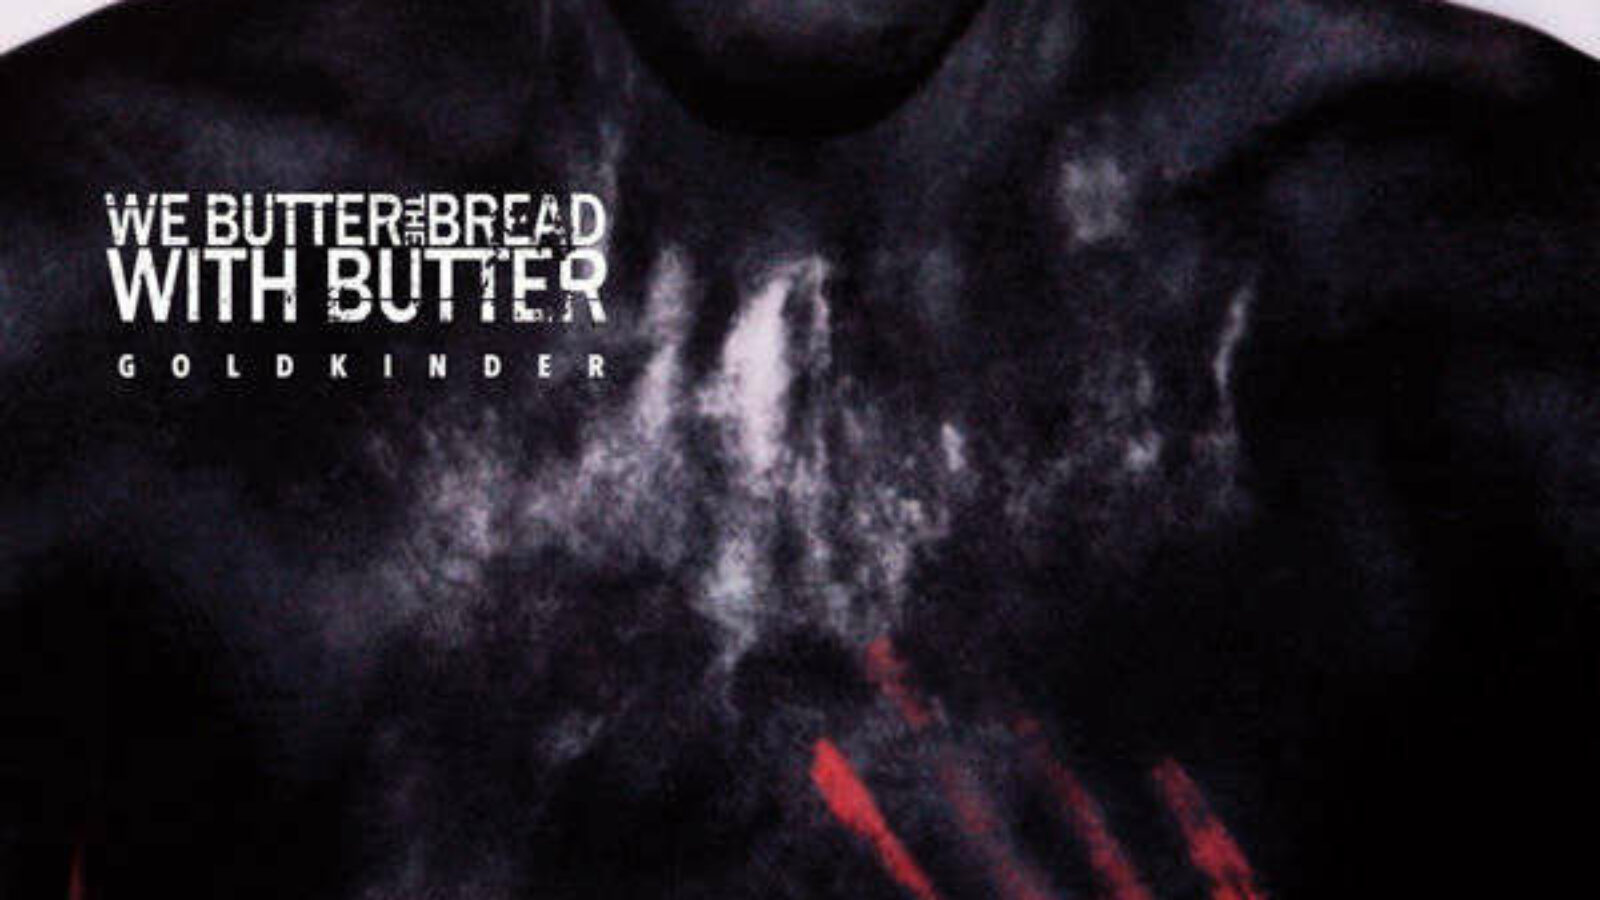 WE BUTTER THE BREAD WITH BUTTER Goldkinder